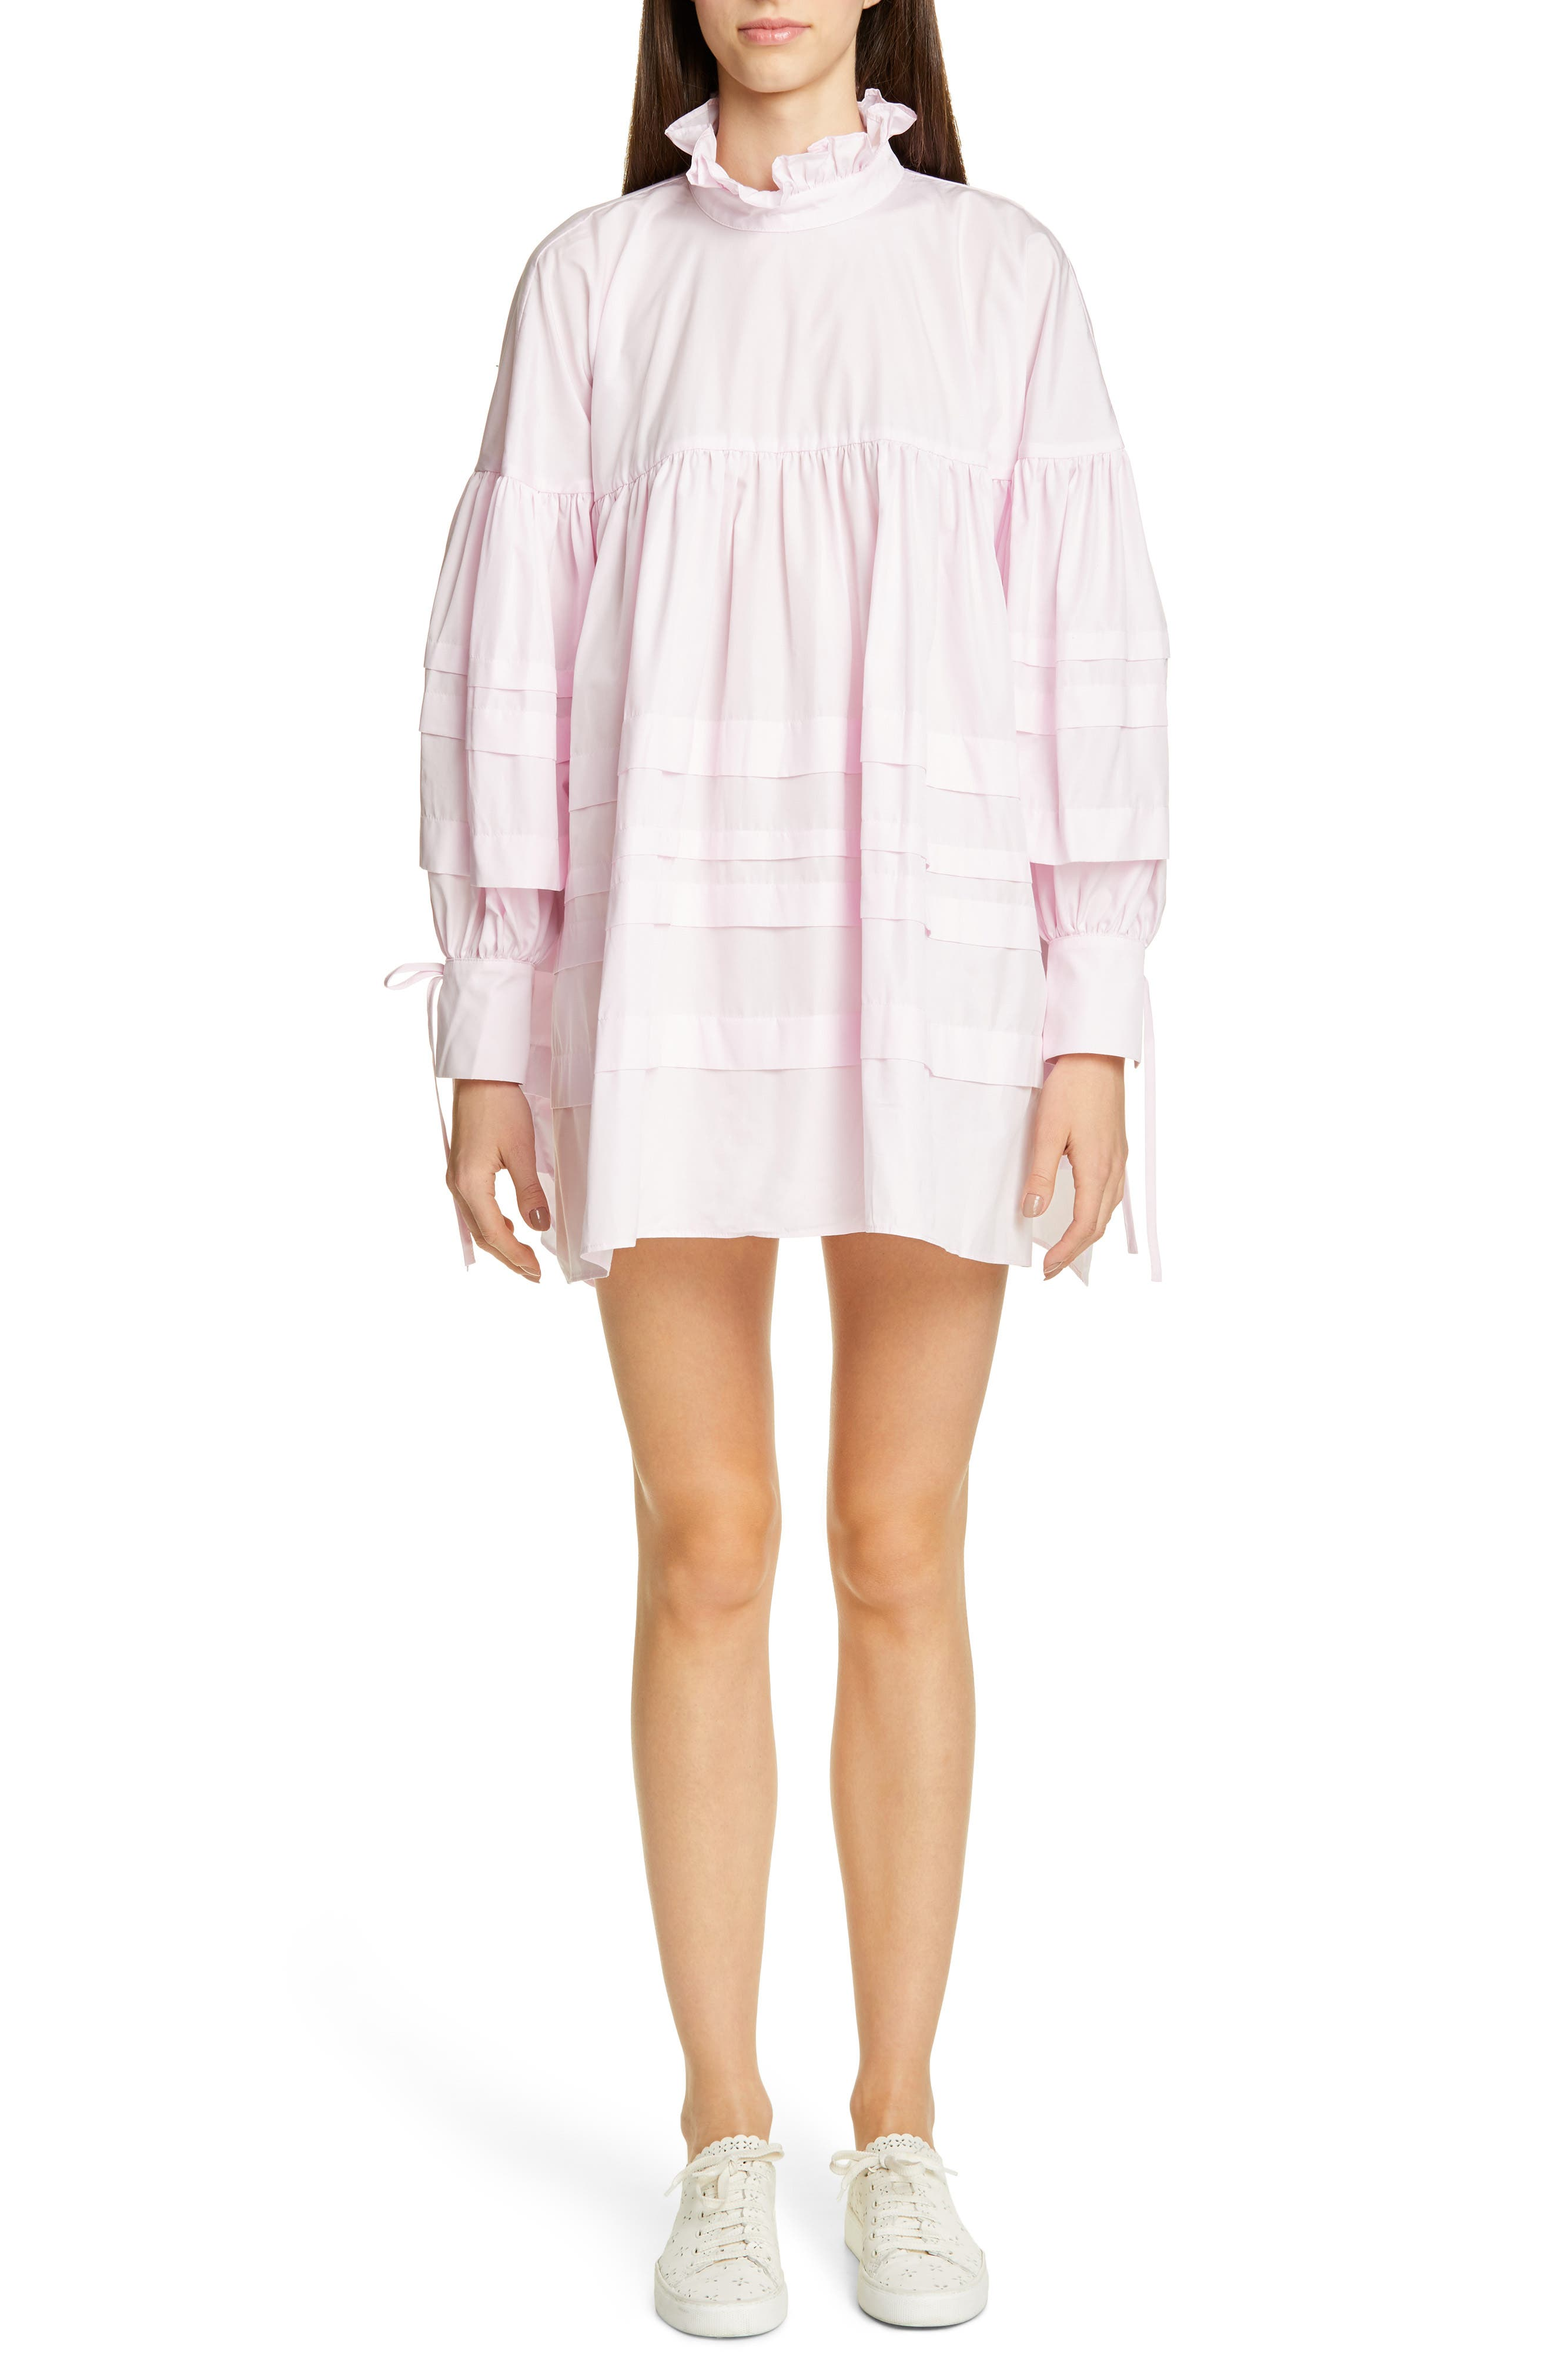 Cecilie Bahnsen Alberte Dress, US / 10 UK - Pink